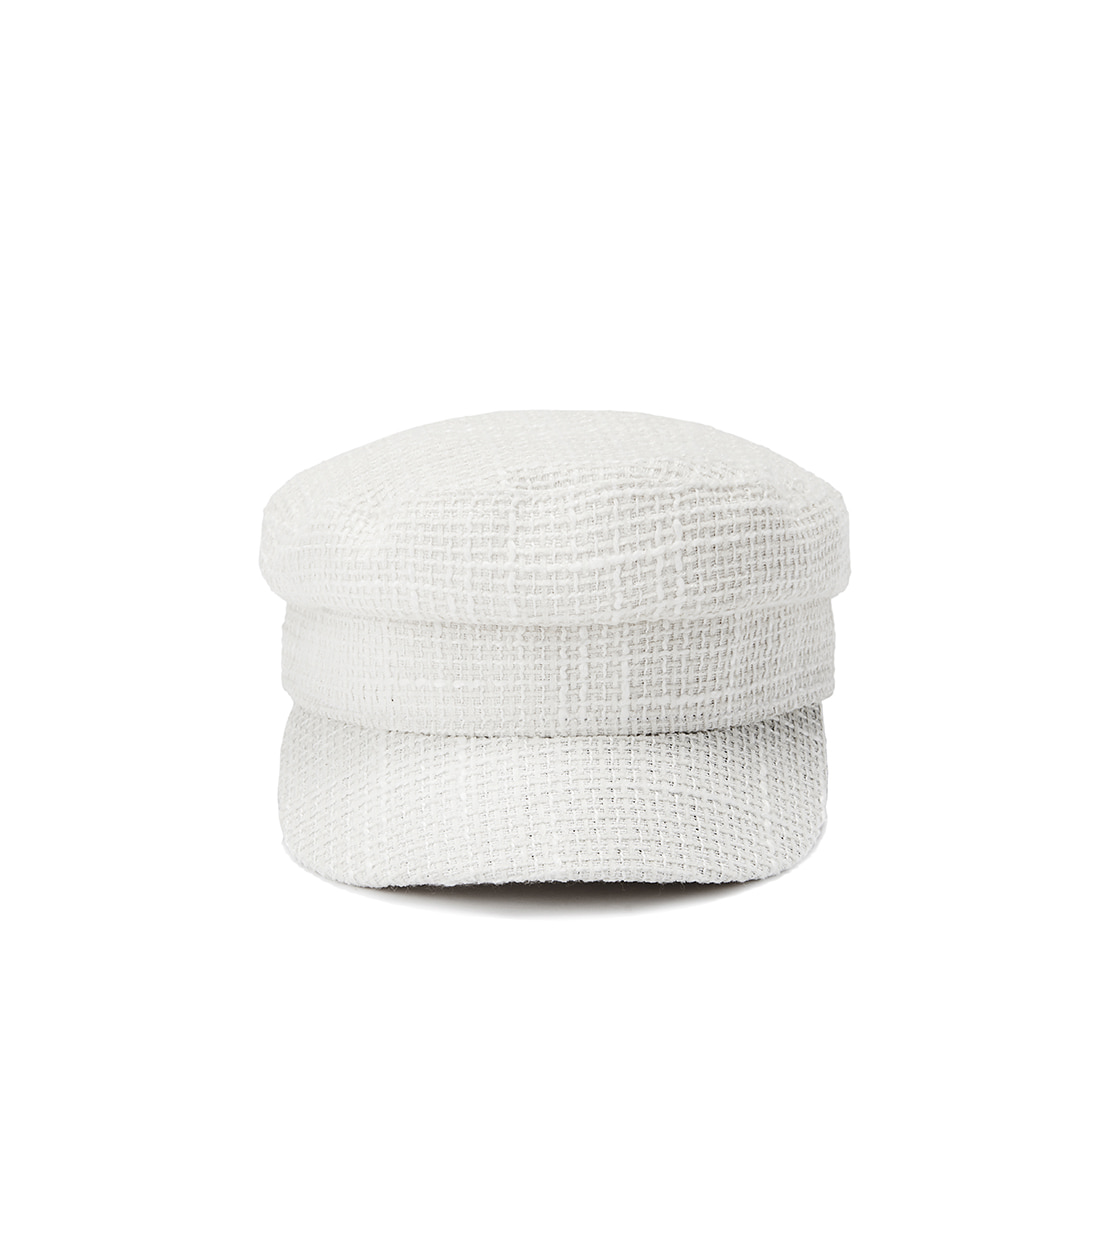 [트와이스 모모 착용] andy marine cap - tweed ivory